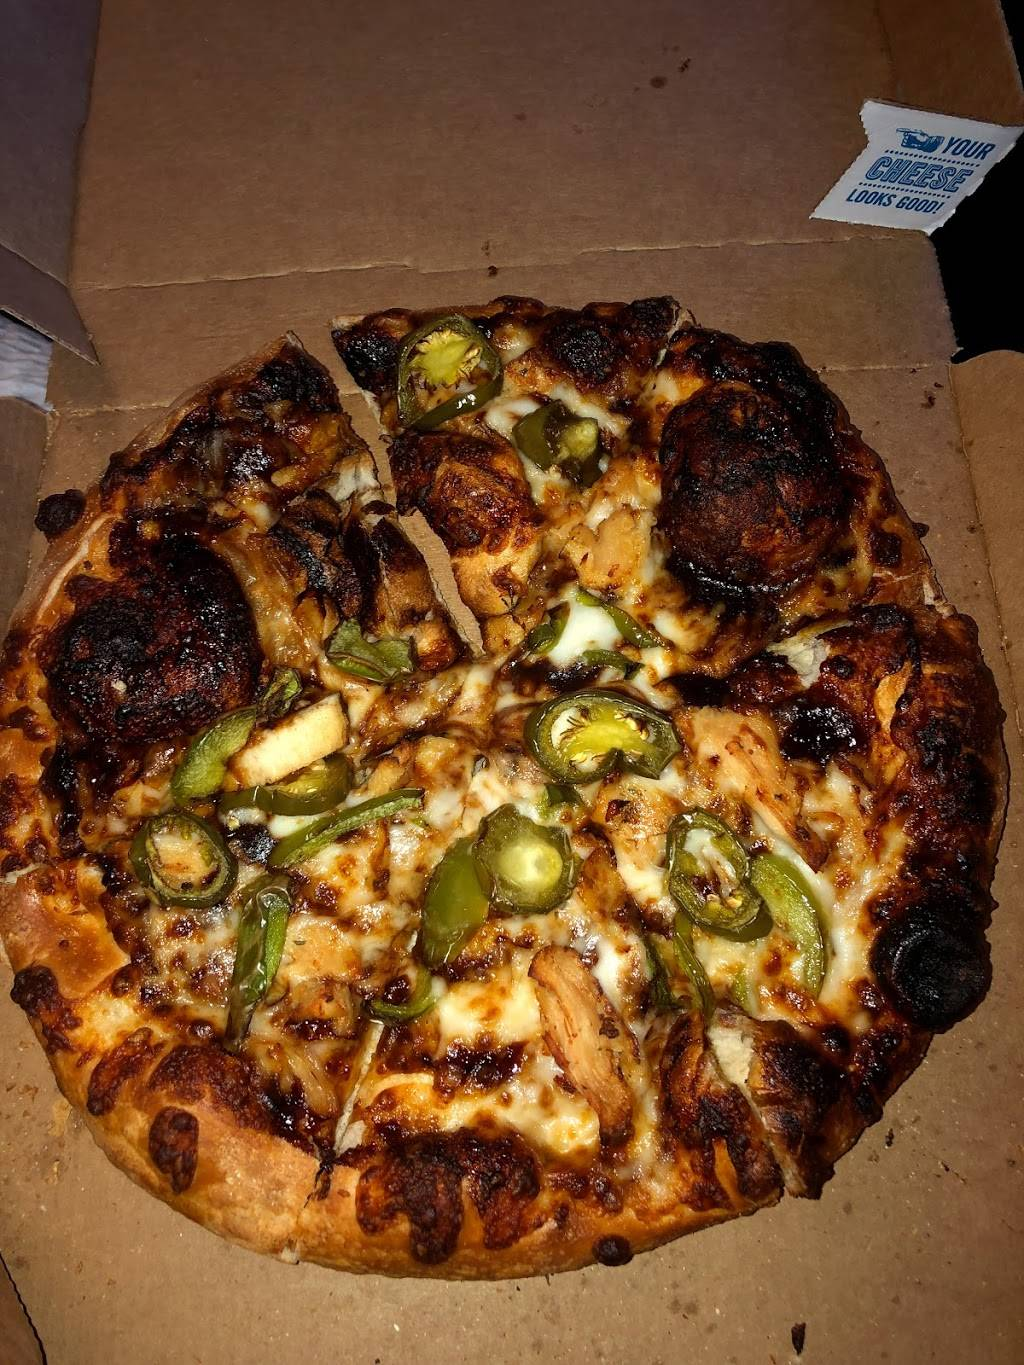 Dominos Pizza - meal delivery  | Photo 2 of 10 | Address: 4525 Milwaukee Ave Ste 400, Lubbock, TX 79407, USA | Phone: (806) 701-4570